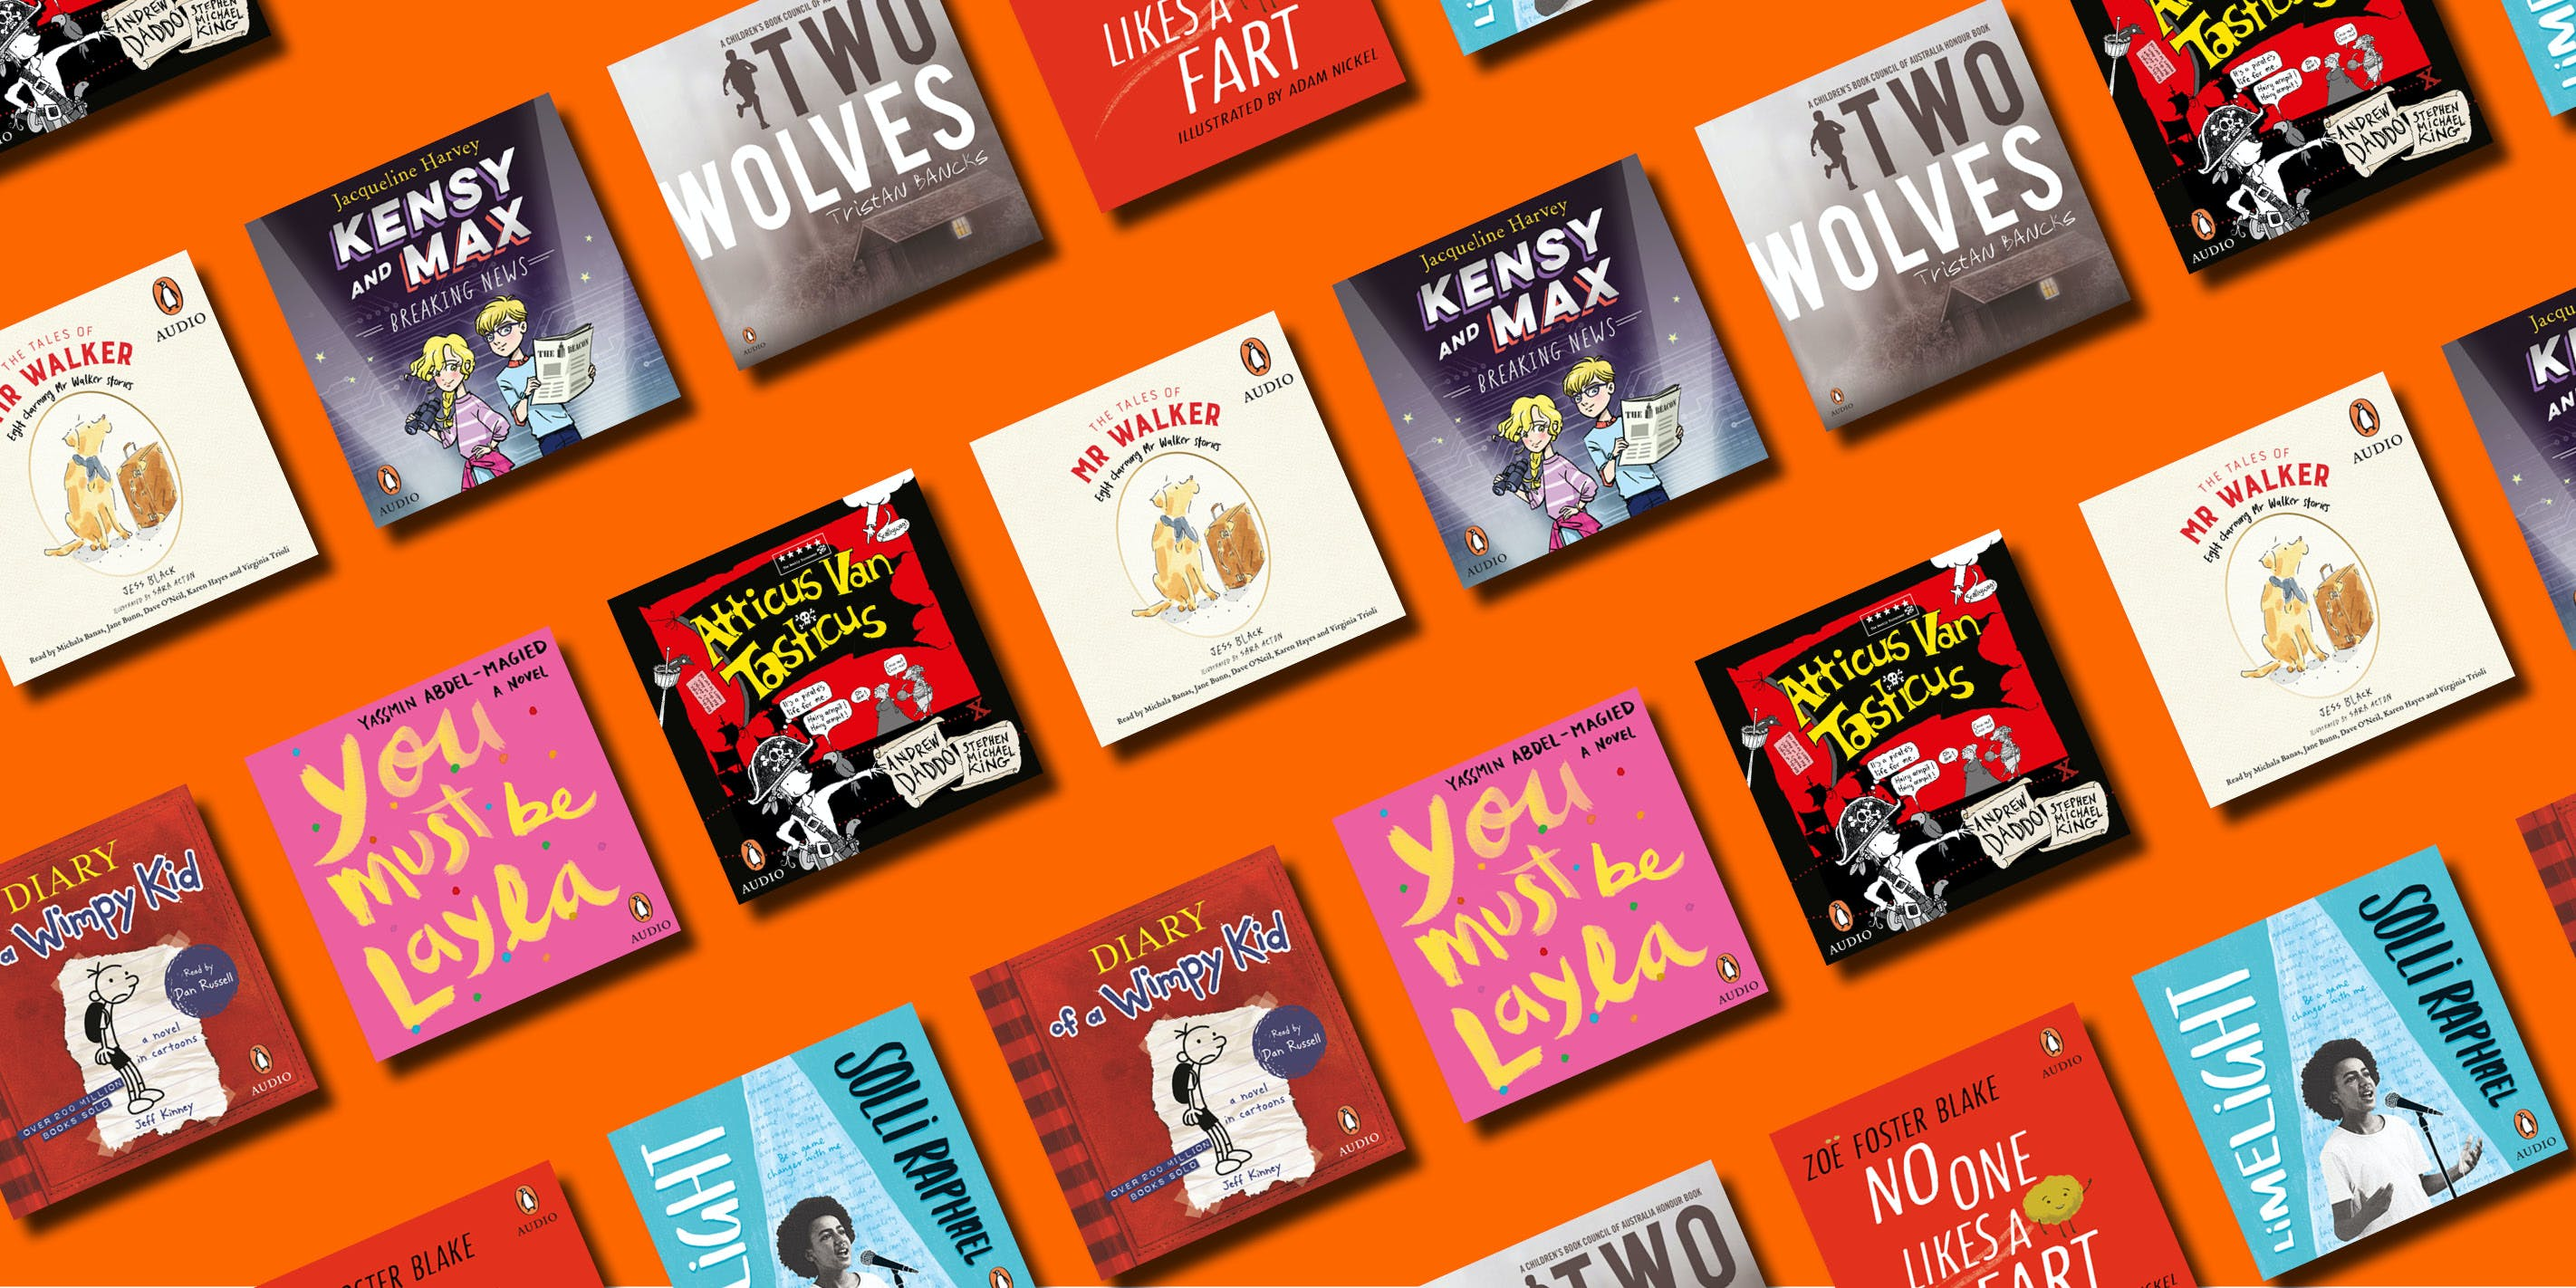 9 audiobooks for the whole family to enjoy